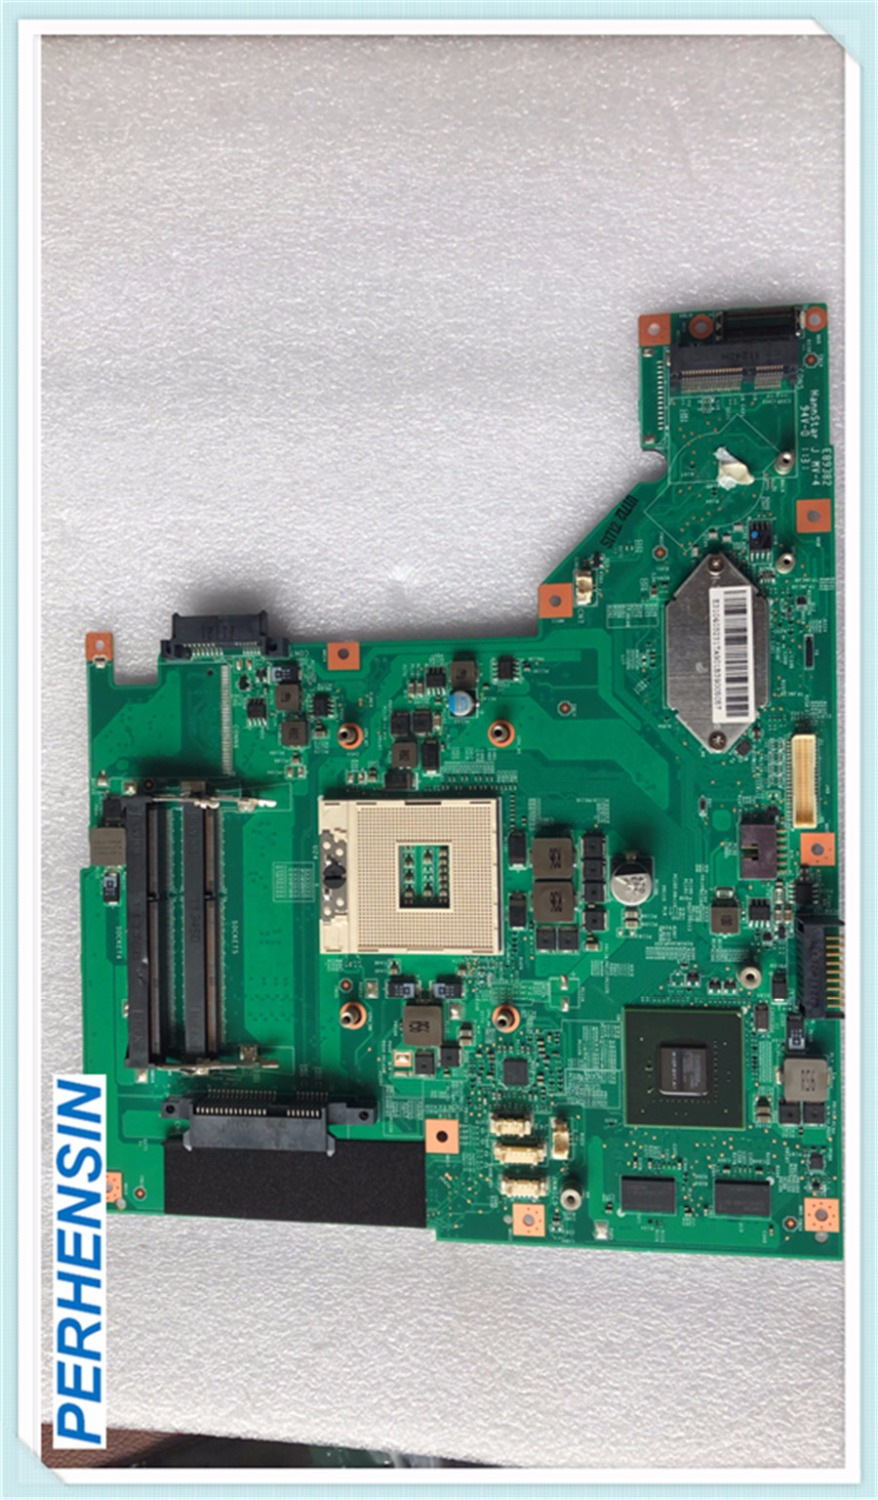 Original FOR <font><b>MSI</b></font> <font><b>FX720</b></font> Laptop Motherboard MS-17541 MS-1754 100% Work Perfectly image